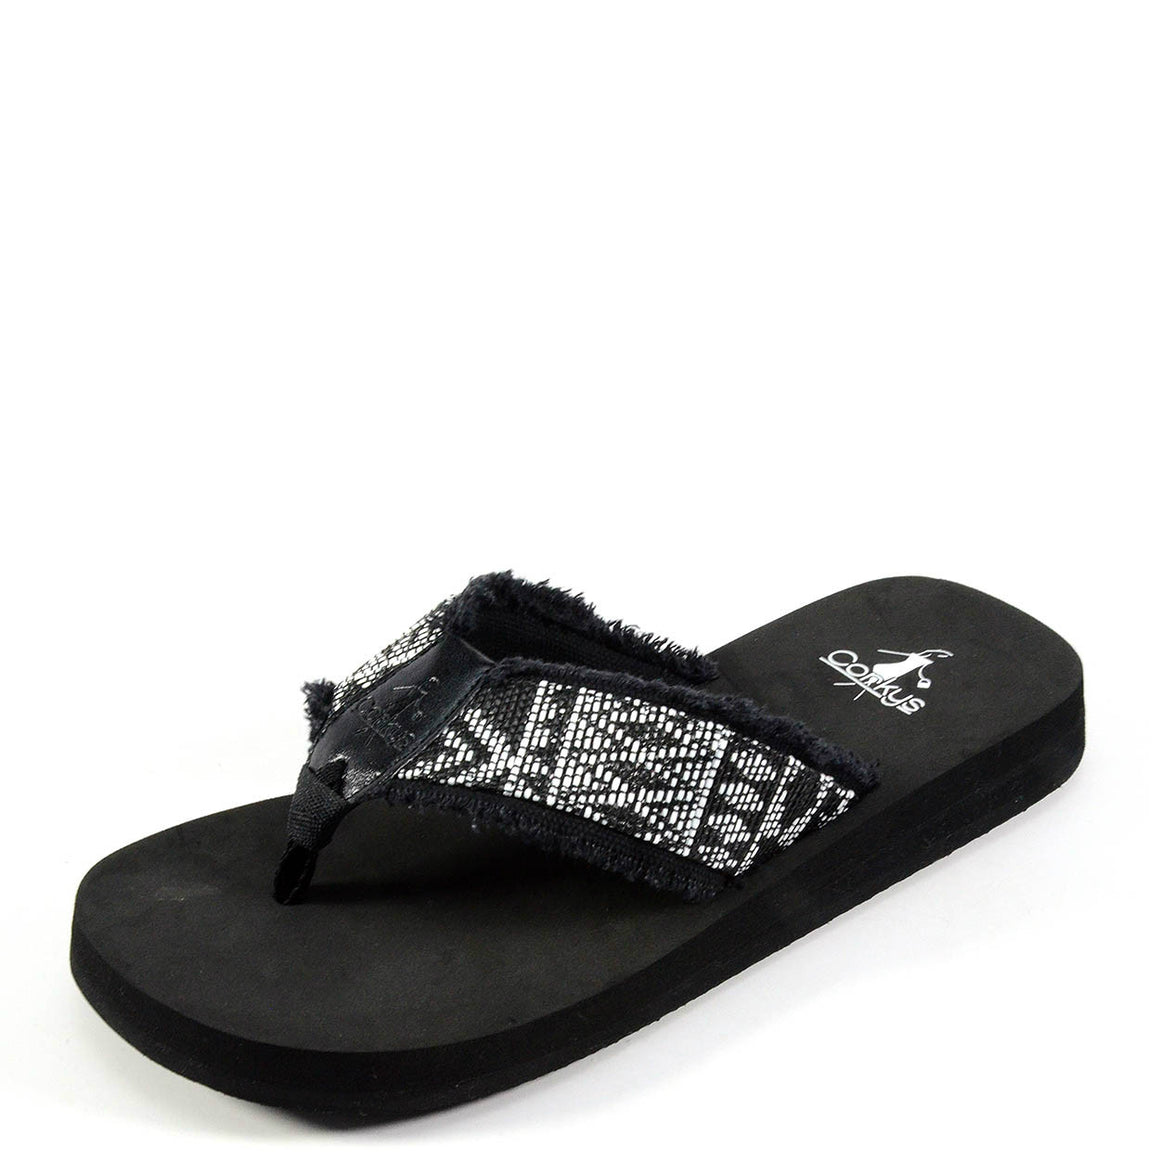 Corkys Women's Scallop Sandal - Black/White 20-8085